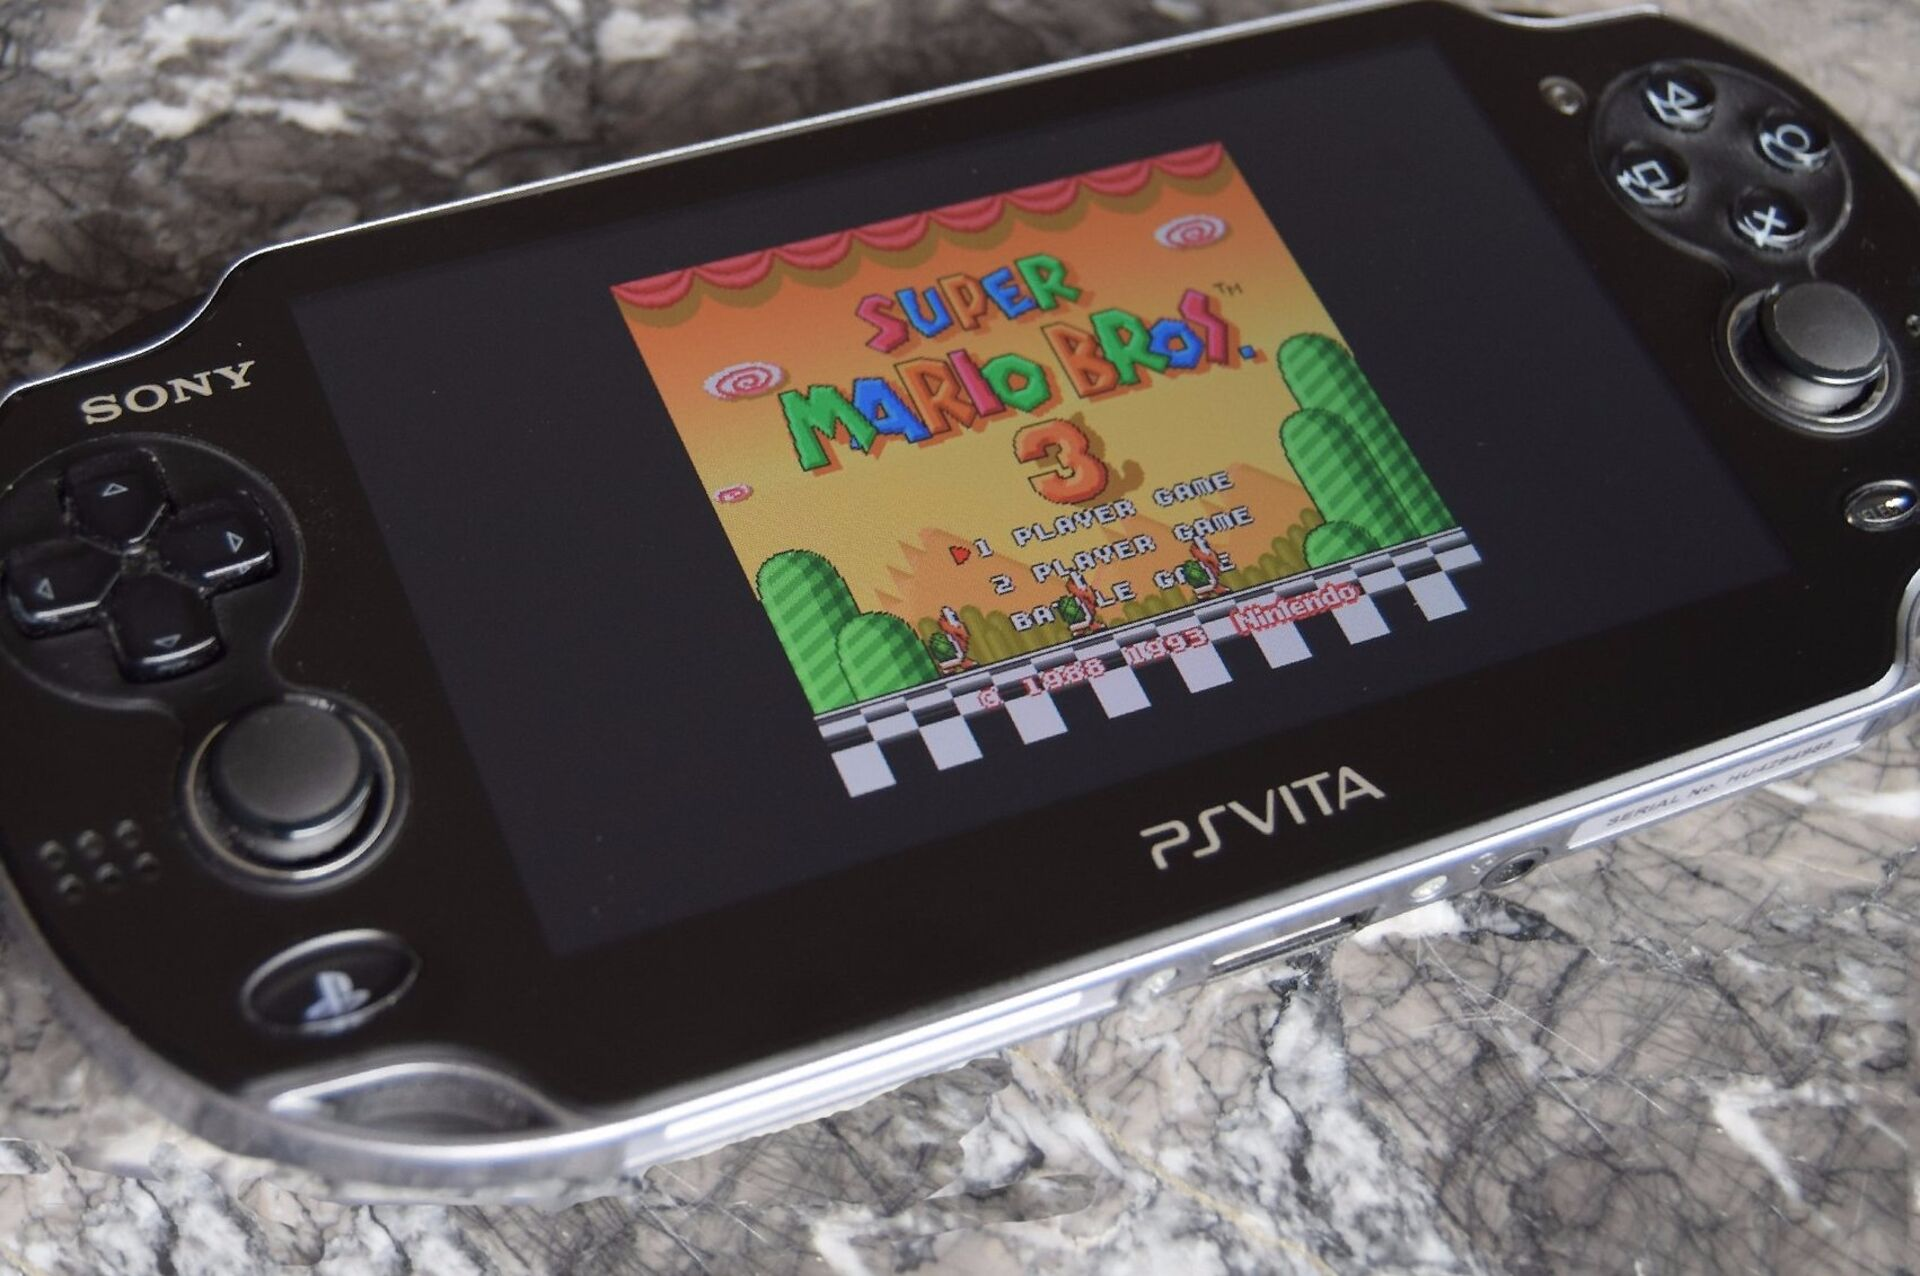 PS Vita hacked: full system access enabled for homebrew • Eurogamer net